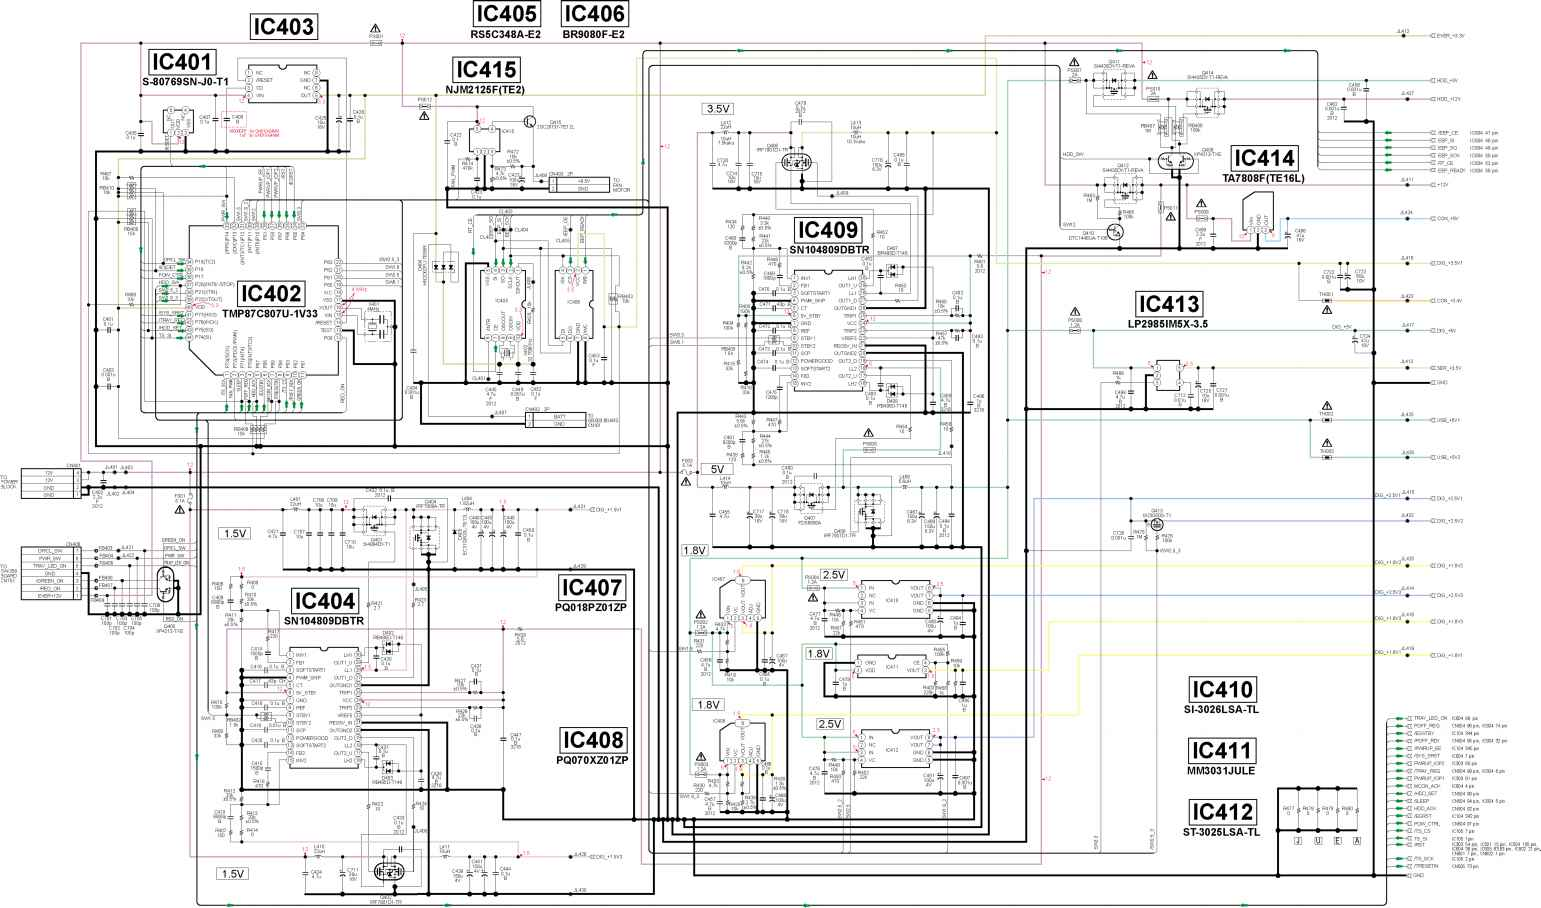 Ps 2 Keyboard Wiring Diagram Diagrams Auto Fuse Box Diagram